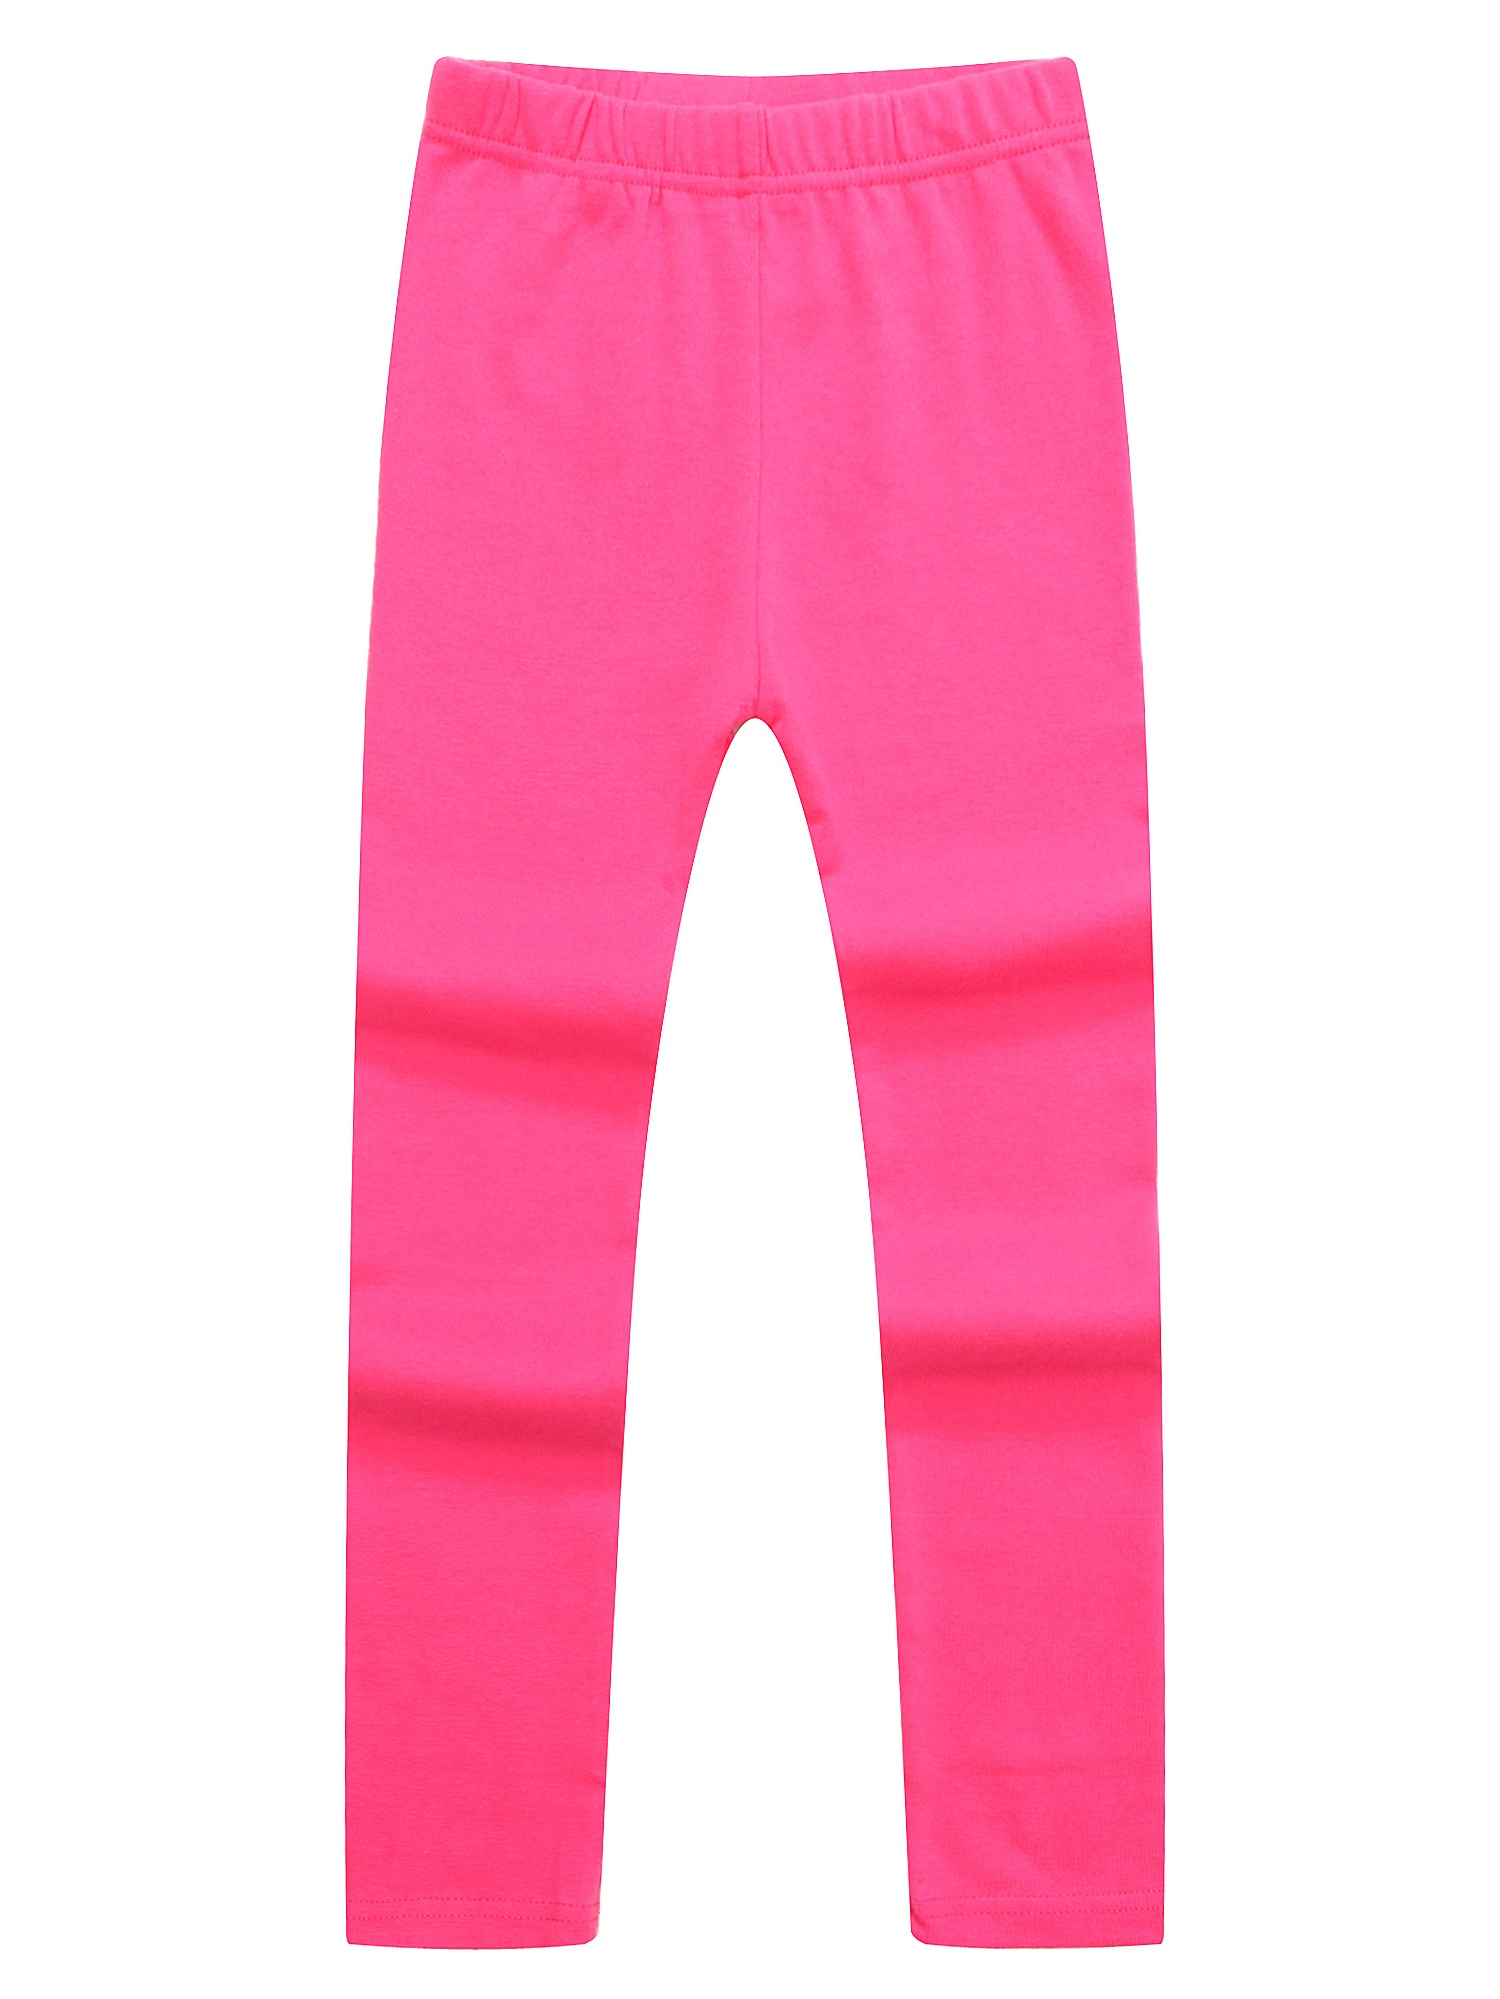 Richie House Girls' Fashion Solid Colored Pants RH1522